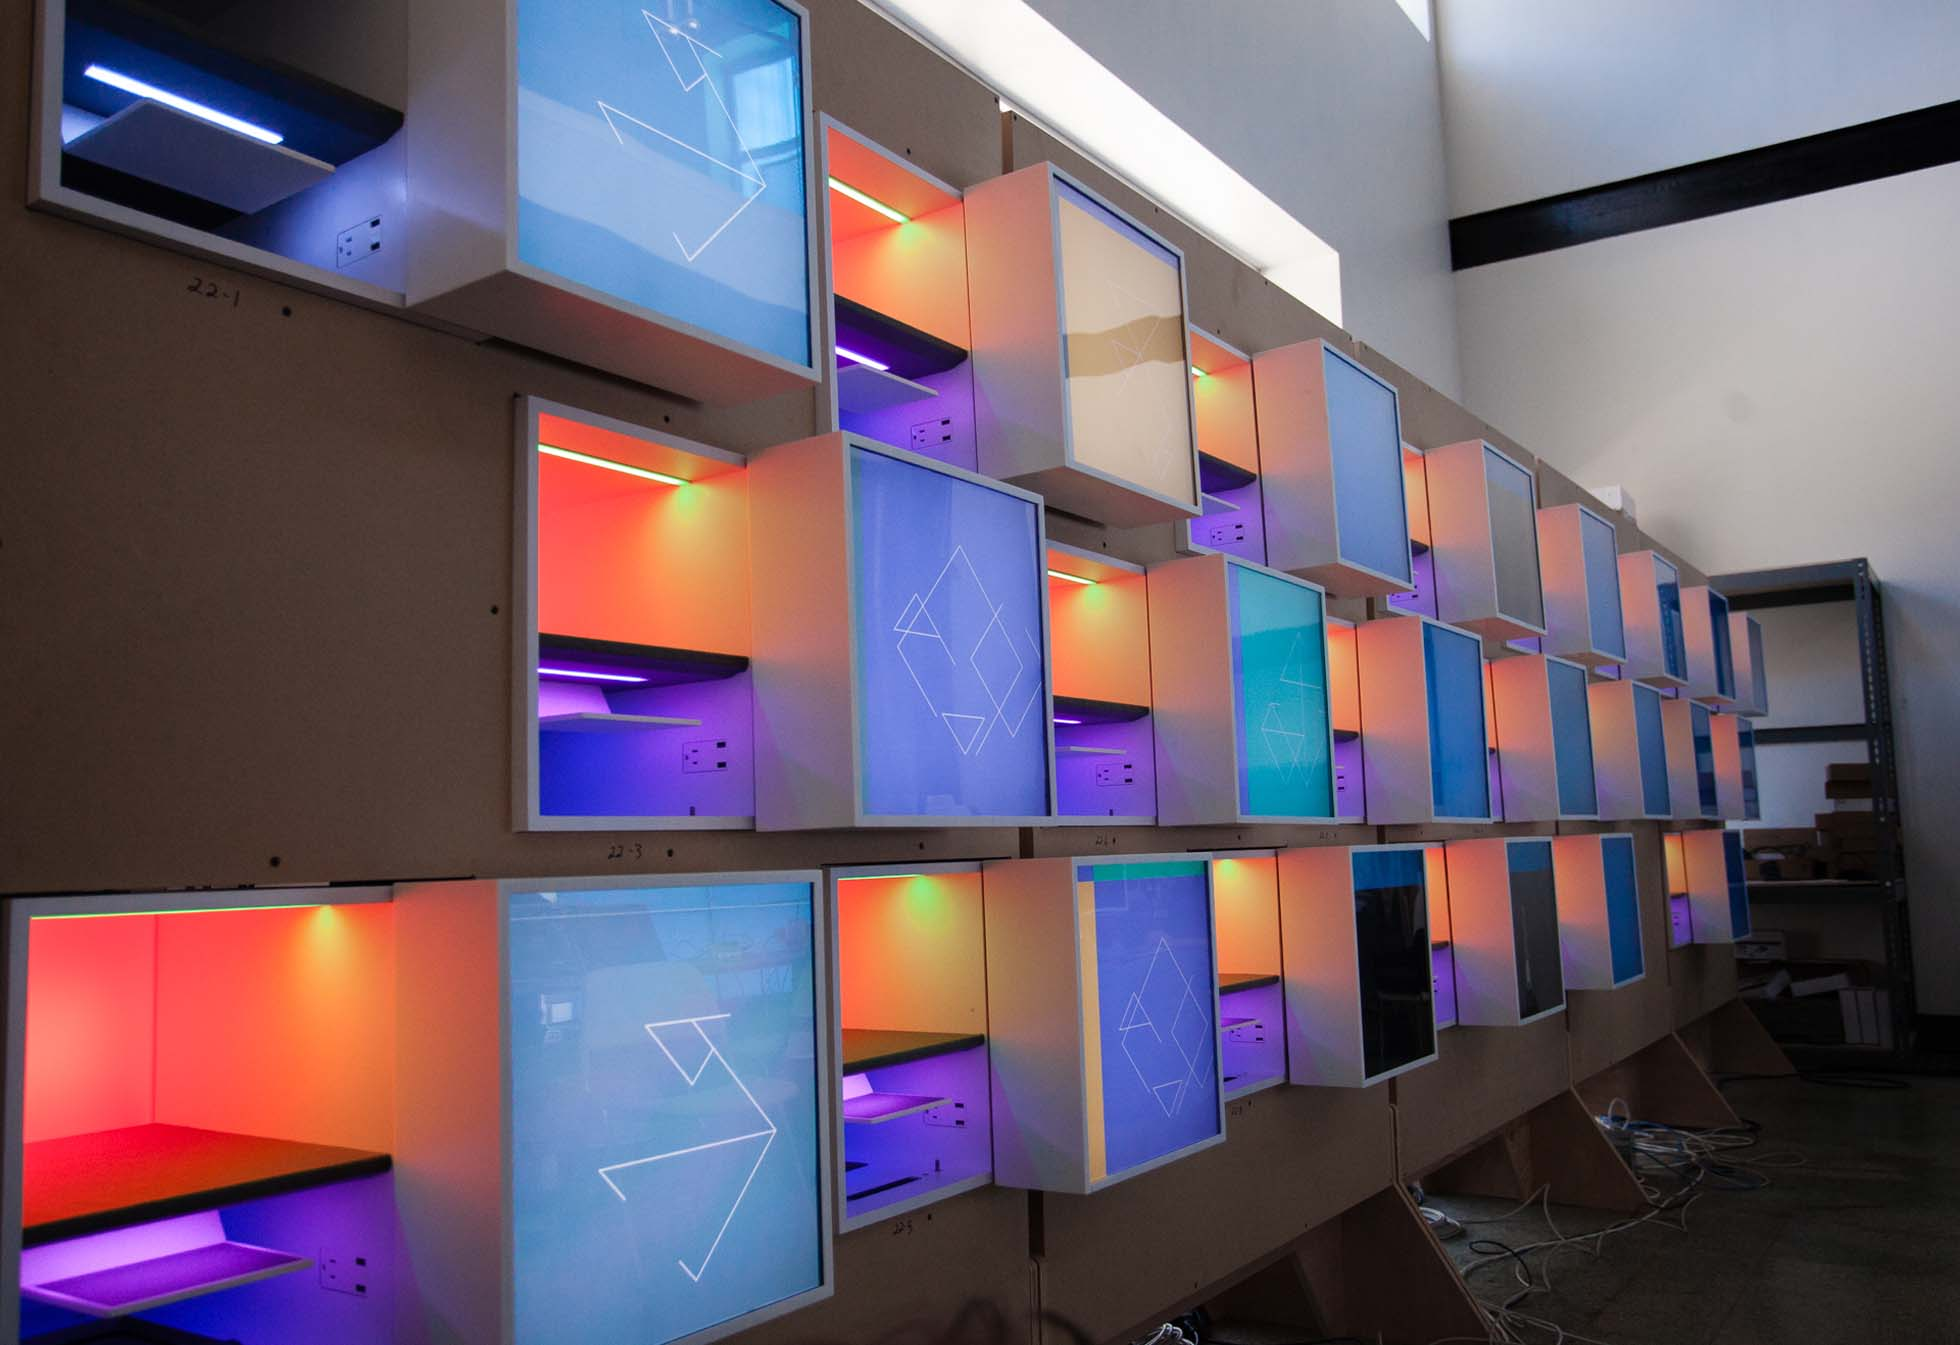 Iontank - Google Cubby Wall